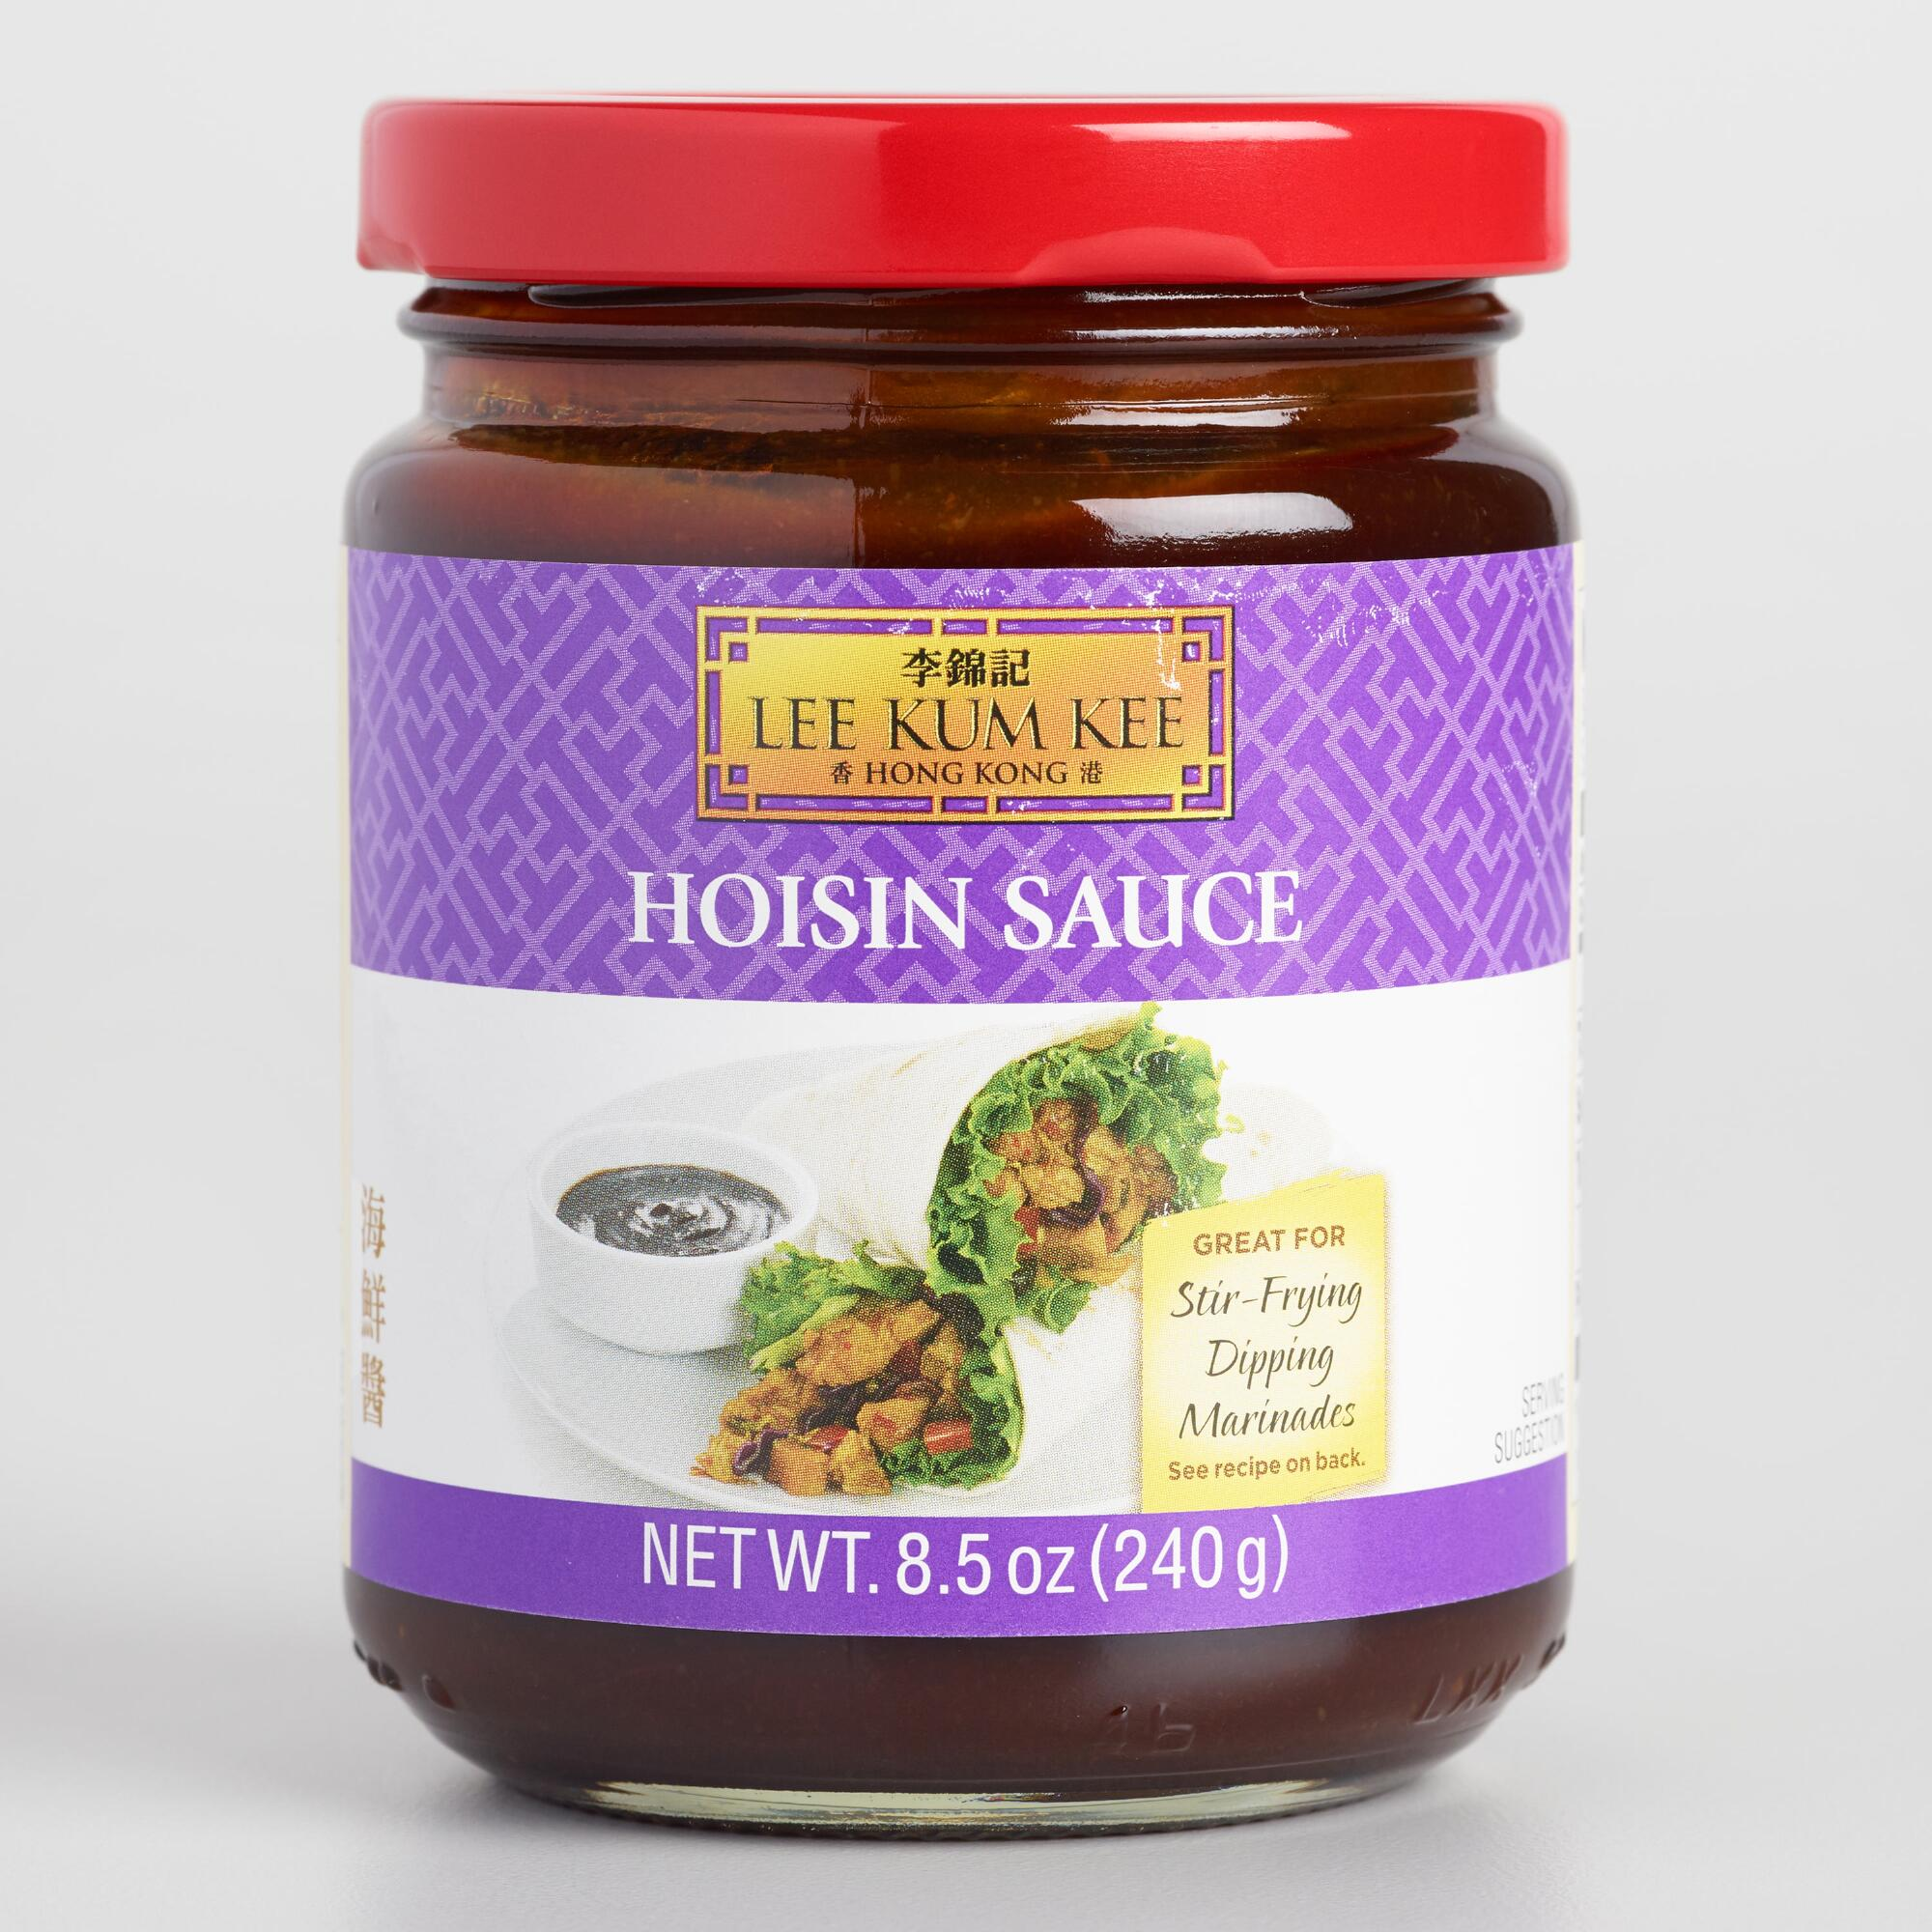 Lee Kum Kee Hoisin Sauce | World Market